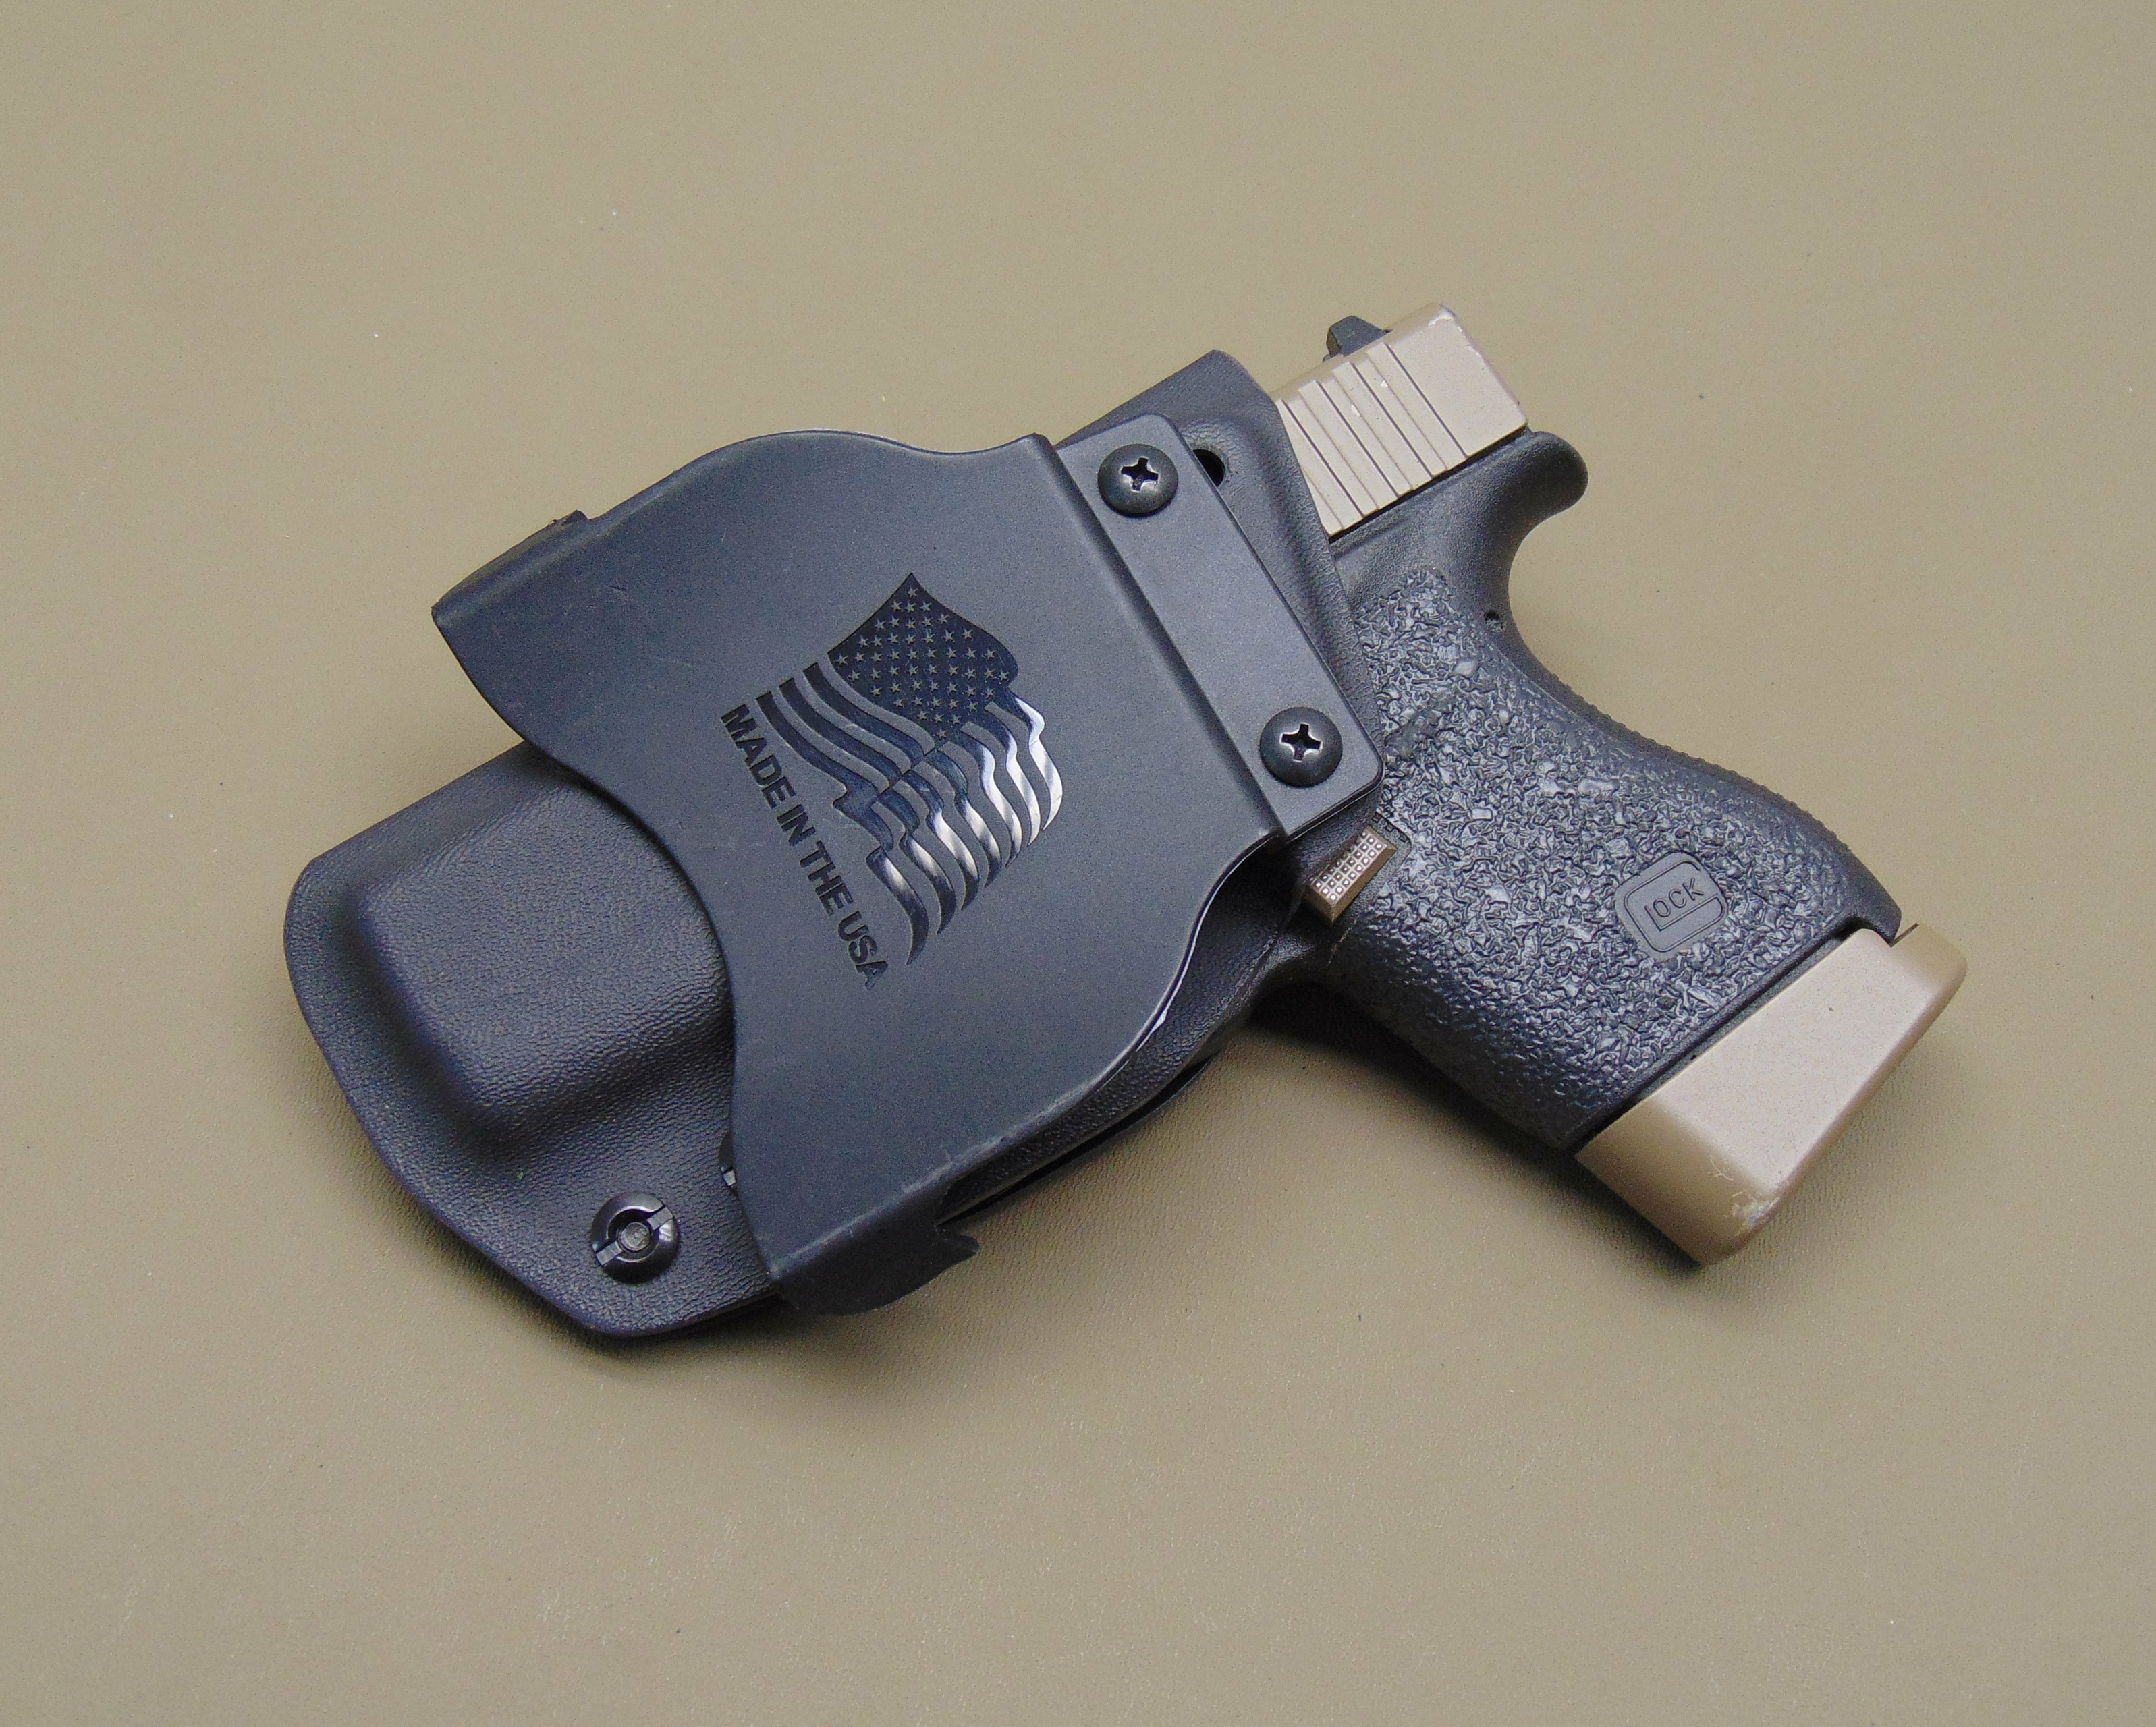 Kydex OWB Paddle Holster for the Glock 43